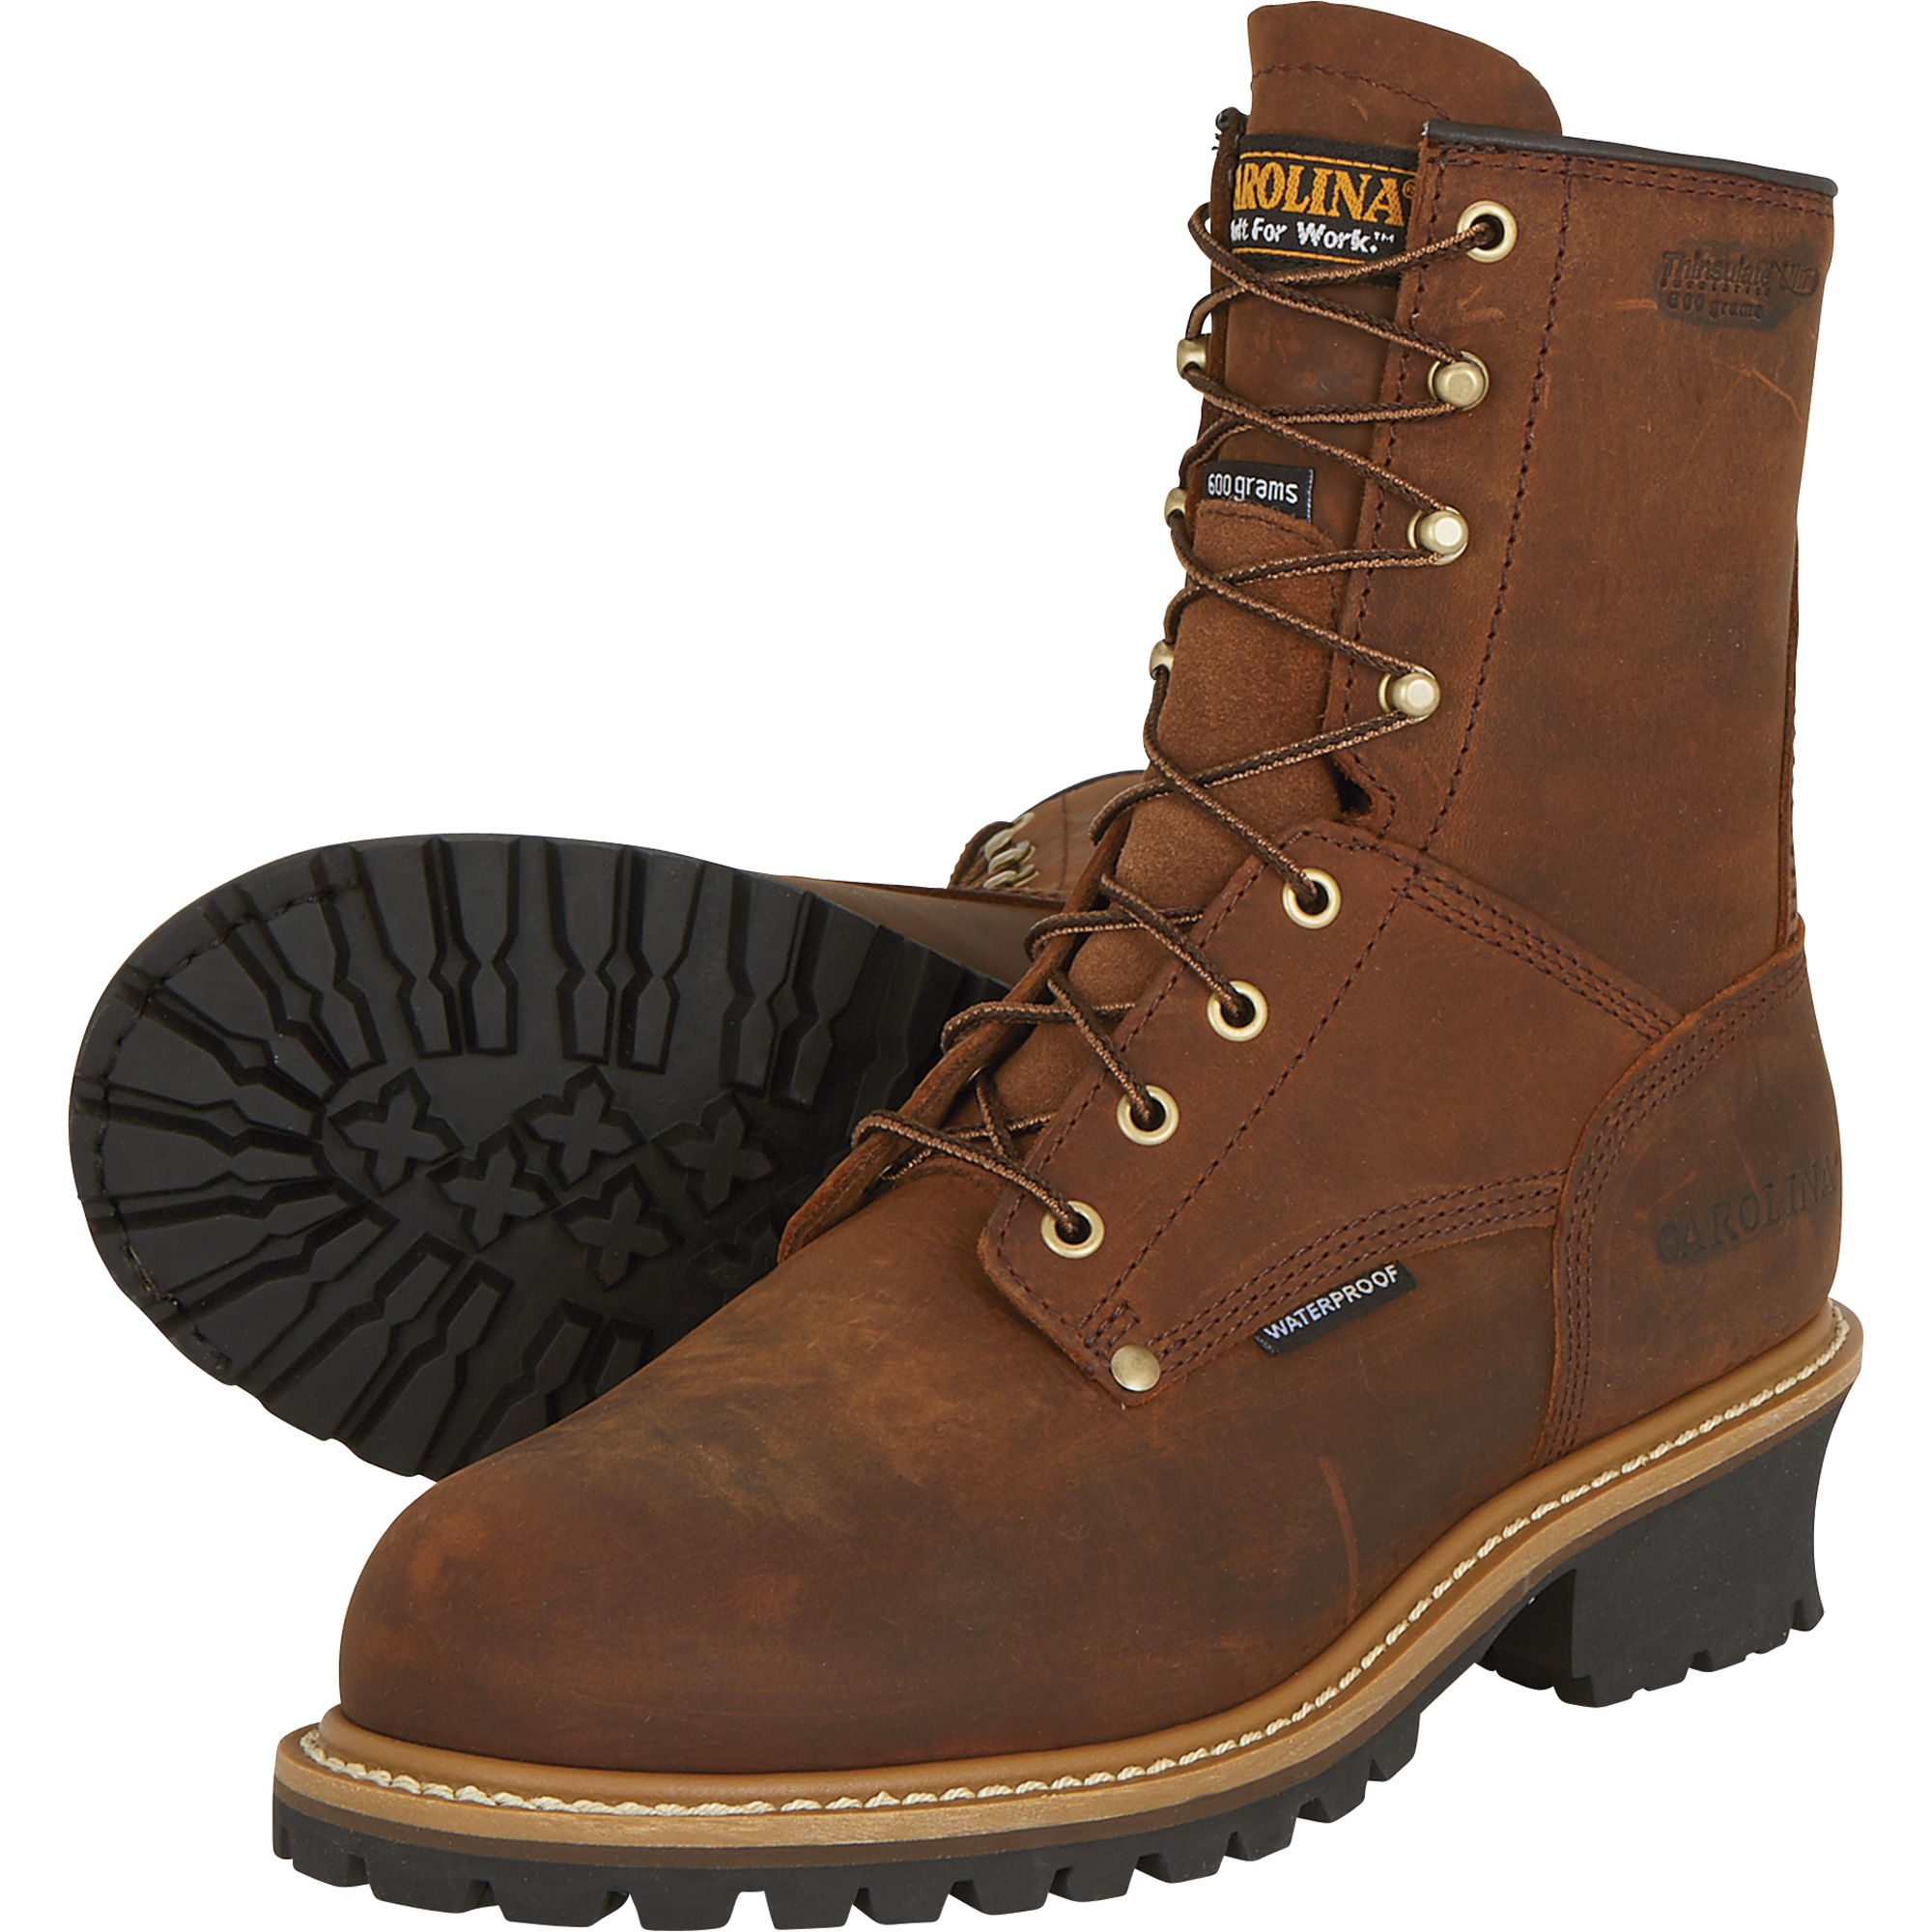 5e9a356dcad Carolina Men's 8in. Waterproof Insulated Logger Work Boots - Brown, Size 15  Wide, Model# CA4821